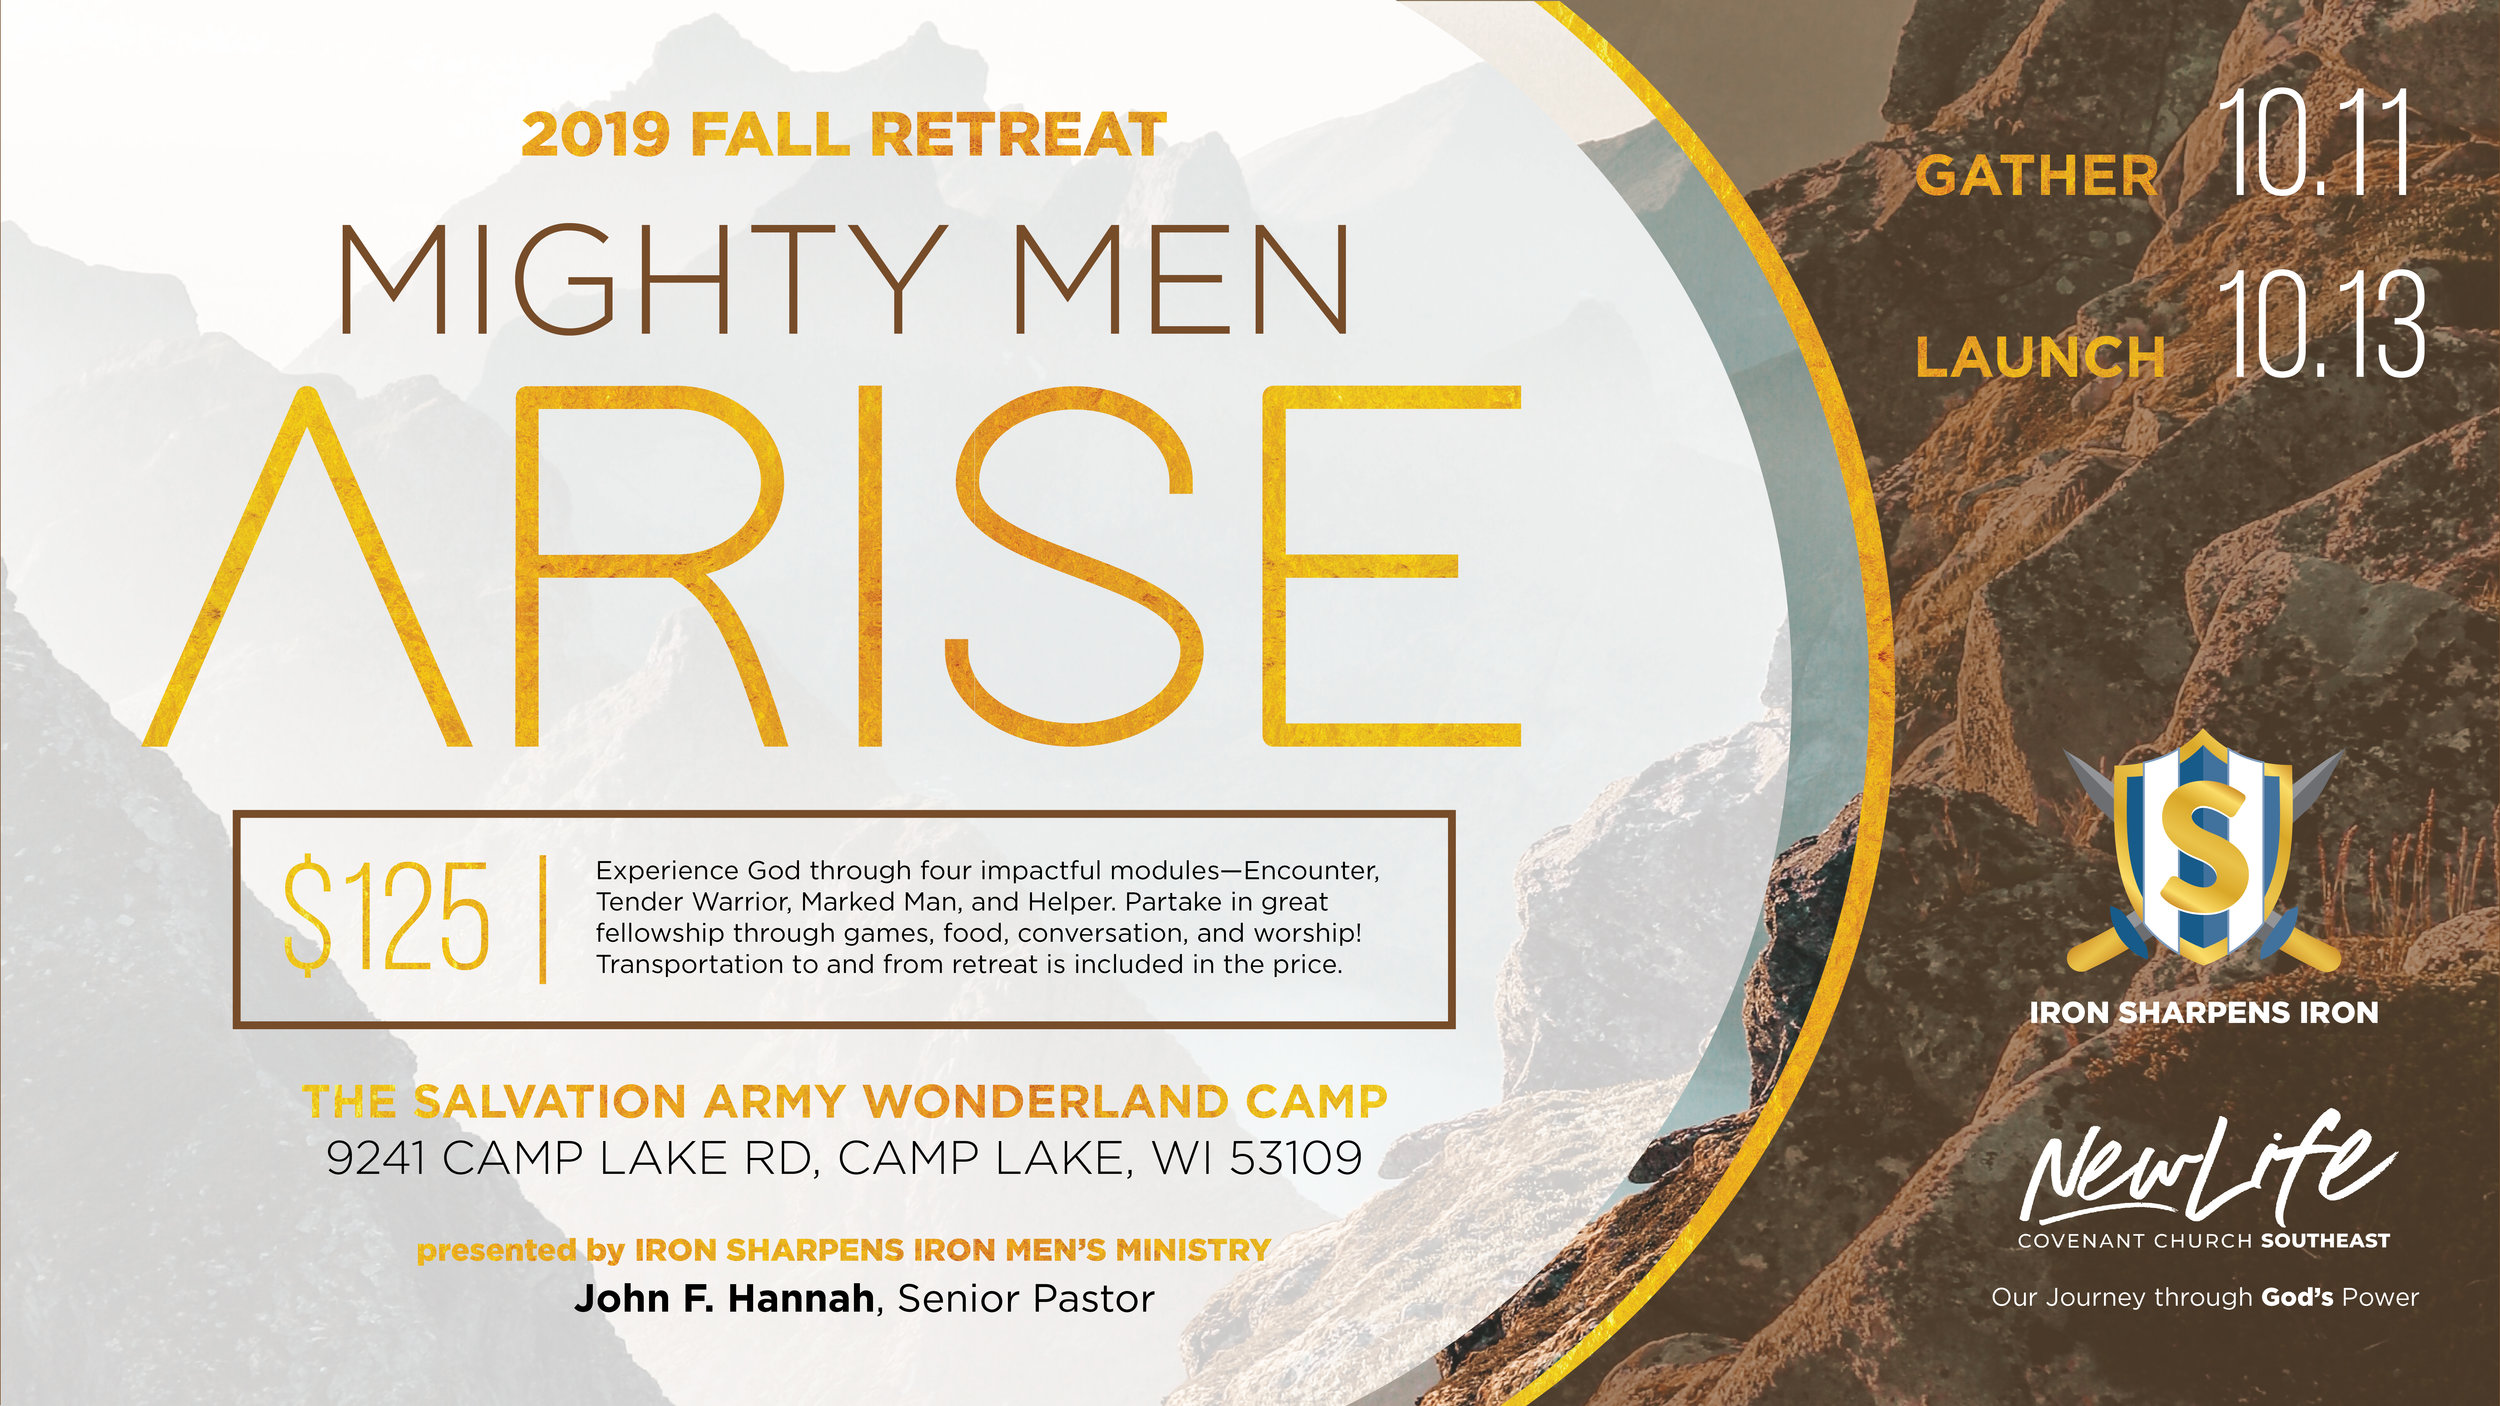 ISI-Fall Retreat-2019-Website Graphic.jpg